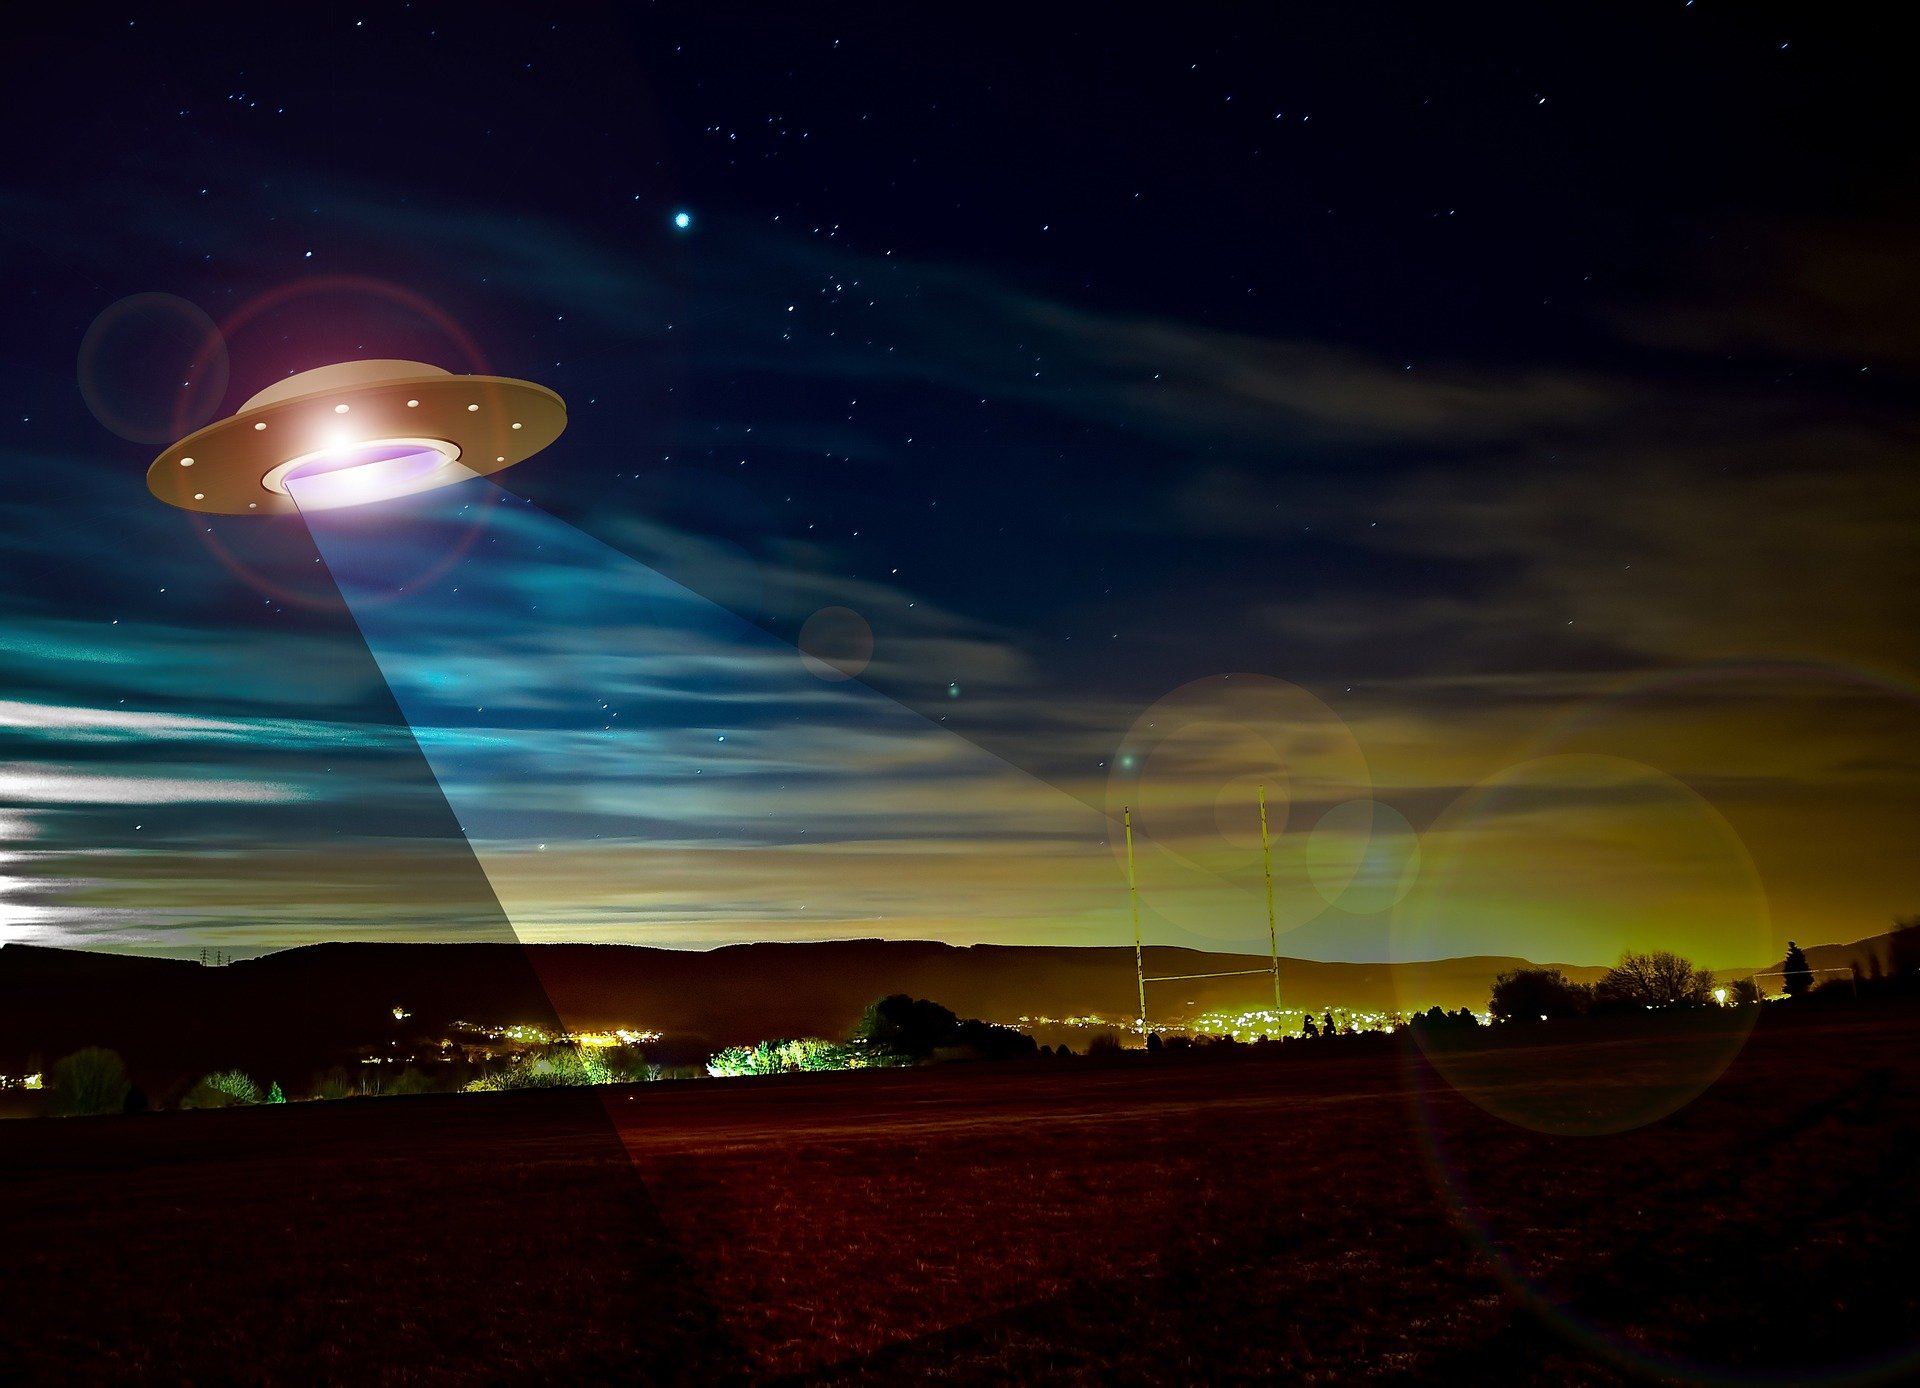 I'm an astronomer and I think aliens may be out there—but UFO sightings aren't persuasive